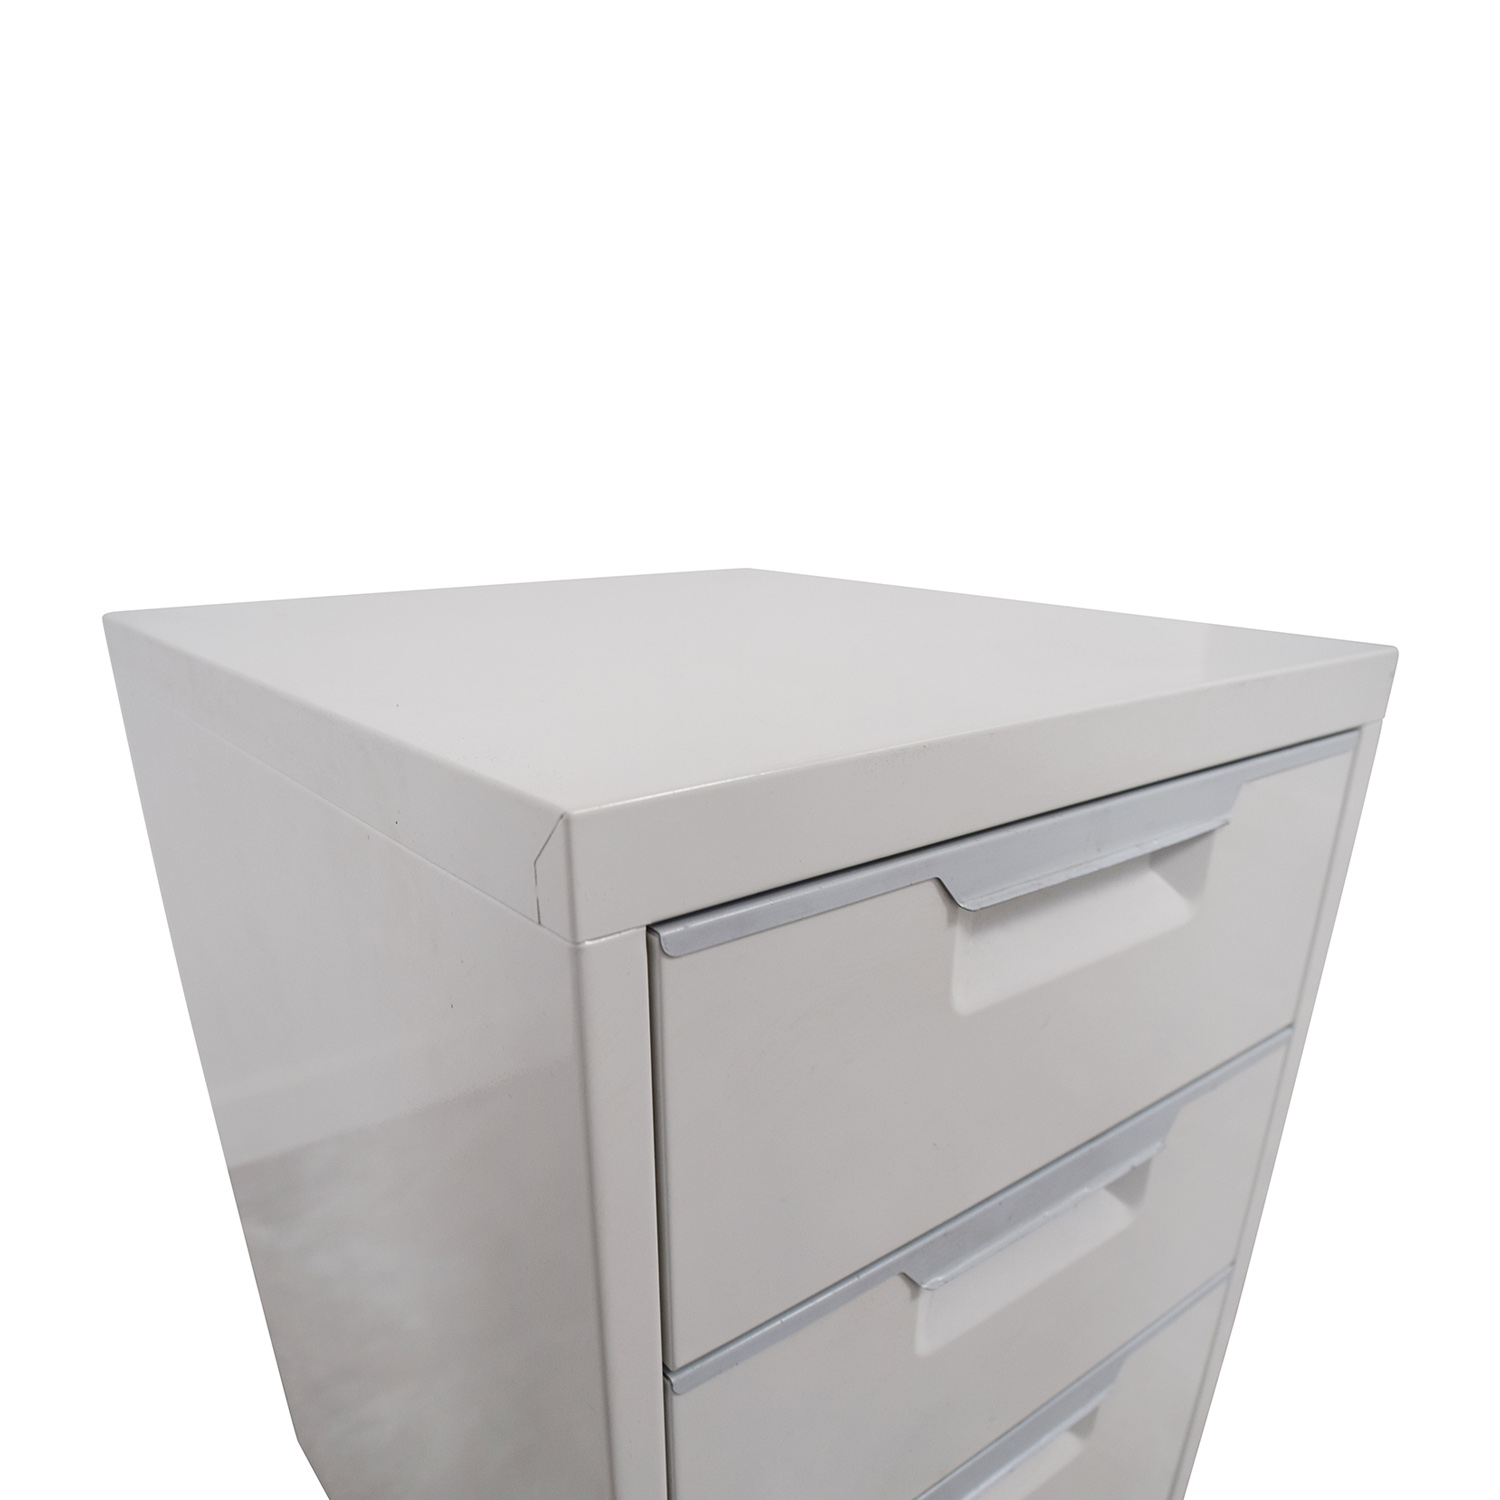 CB2 CB2 TPS White 3-Drawer Filing Cabinet discount